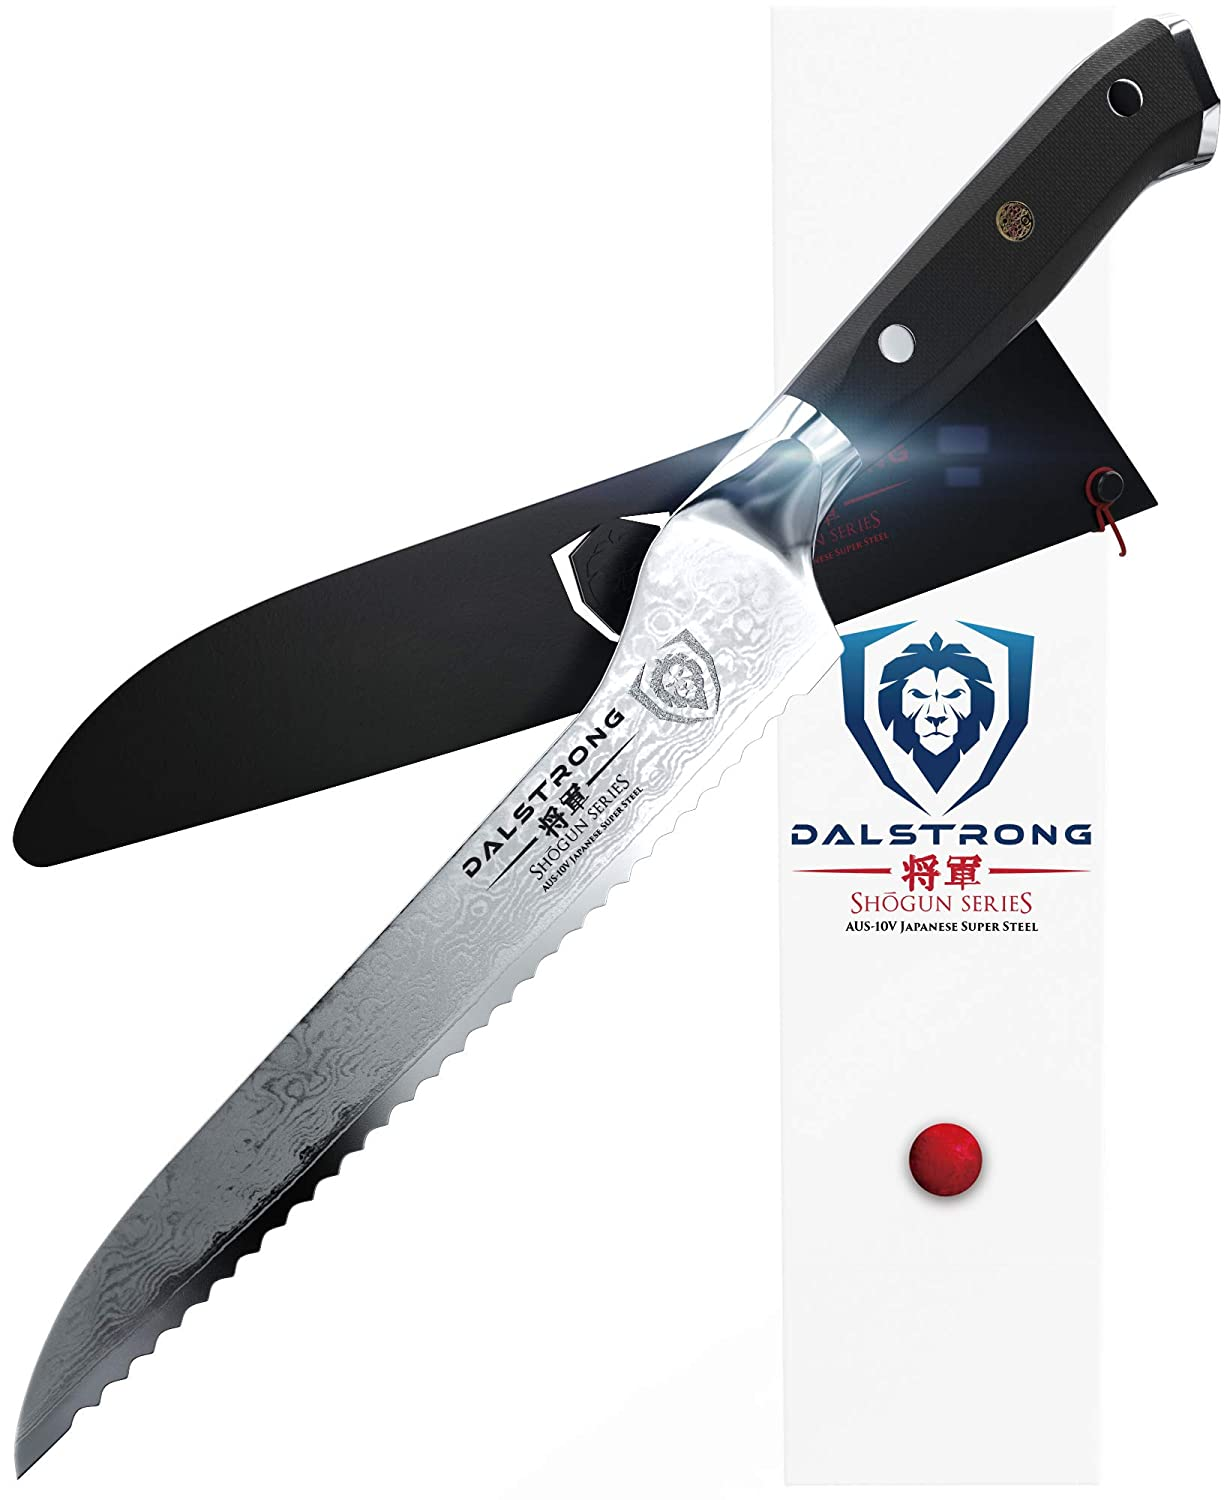 DALSTRONG Serrated Offset Knife- Shogun Series- AUS-10V Japanese Super Steel 67 Layers- Vacuum Treated- 8